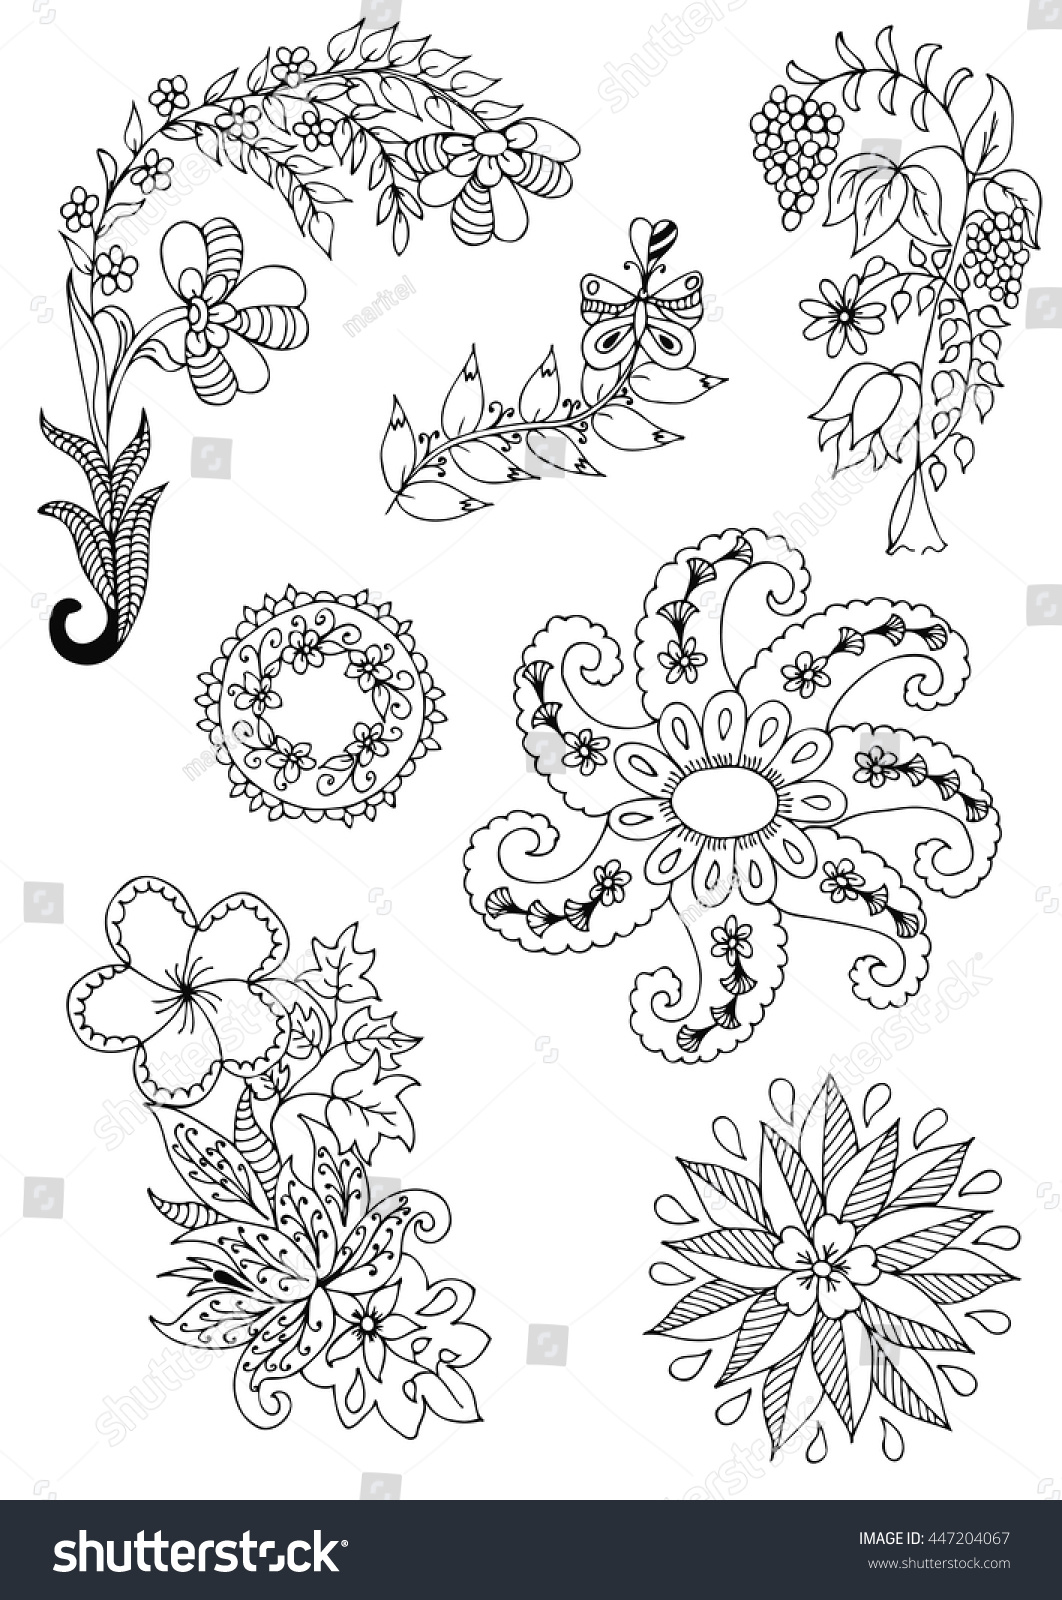 vector illustration zentangl ornament of flowers coloring book anti stress for adults black - Flowers Coloring Book